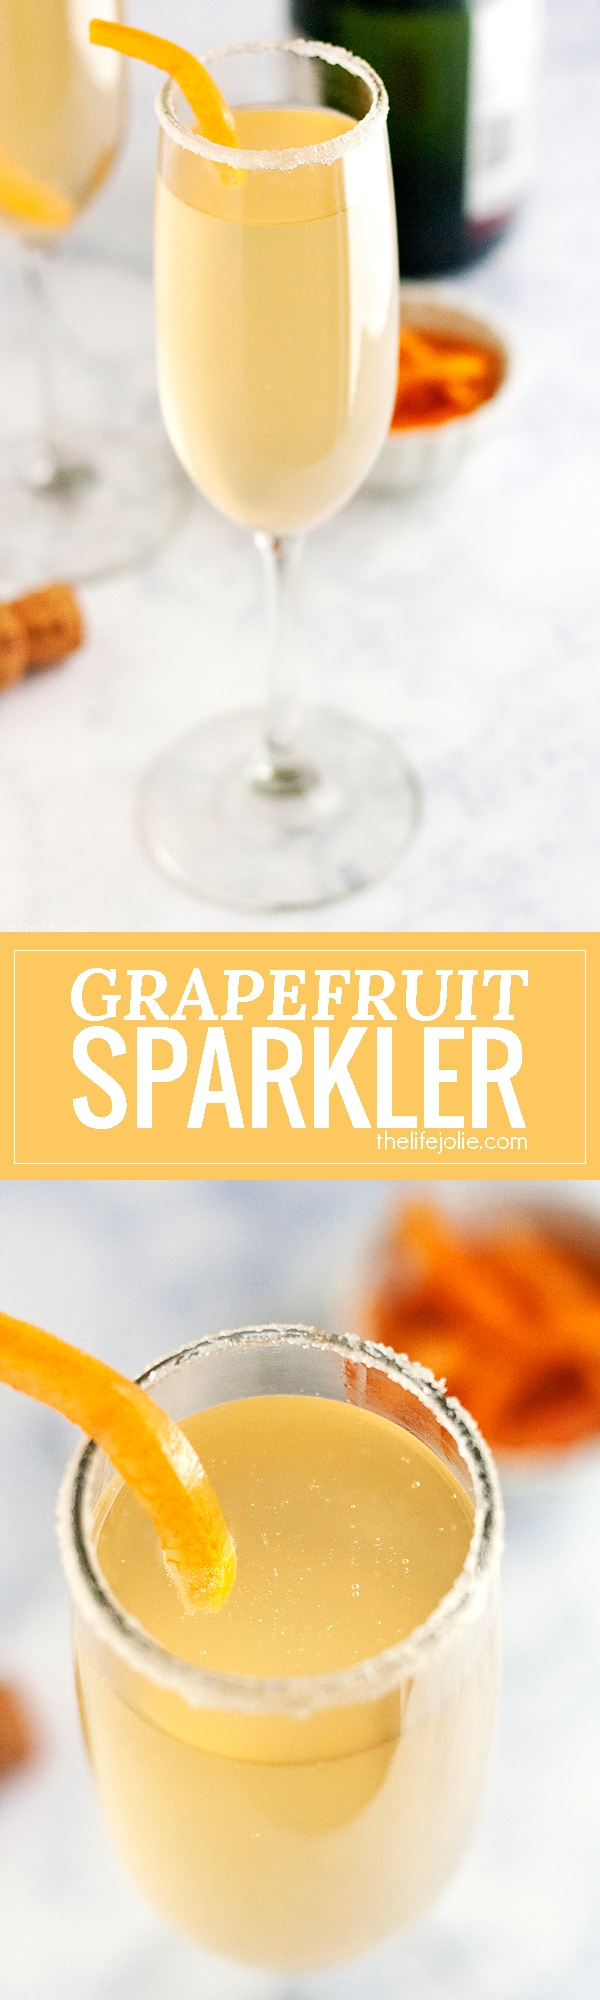 This Grapefruit Sparkler is a festive champagne cocktail! I love adult beverages featuring sparkling wine and this is simple to make and refreshing to drink at brunch or to ring in the New Year. This pretty drink will be a mainstay at your next girls night